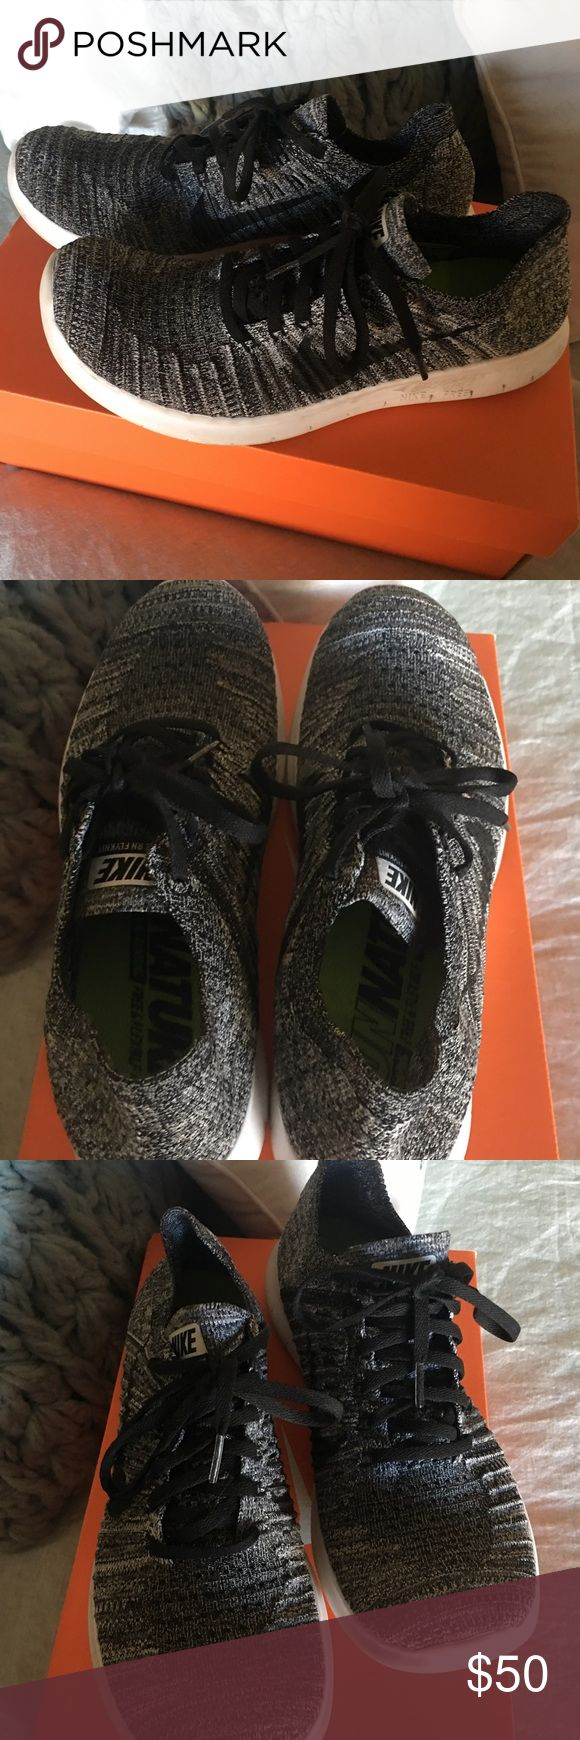 Nike Free Women's RN Flyknit sneakers Sz 9 These Nike sneakers are white/black in color and gently worn only a handful of times. They fit like a glove and have a suggested retail price of $130. They will ship in the original box. Size 9. Wmns Nike Free RN Flyknit. Nike Shoes Athletic Shoes